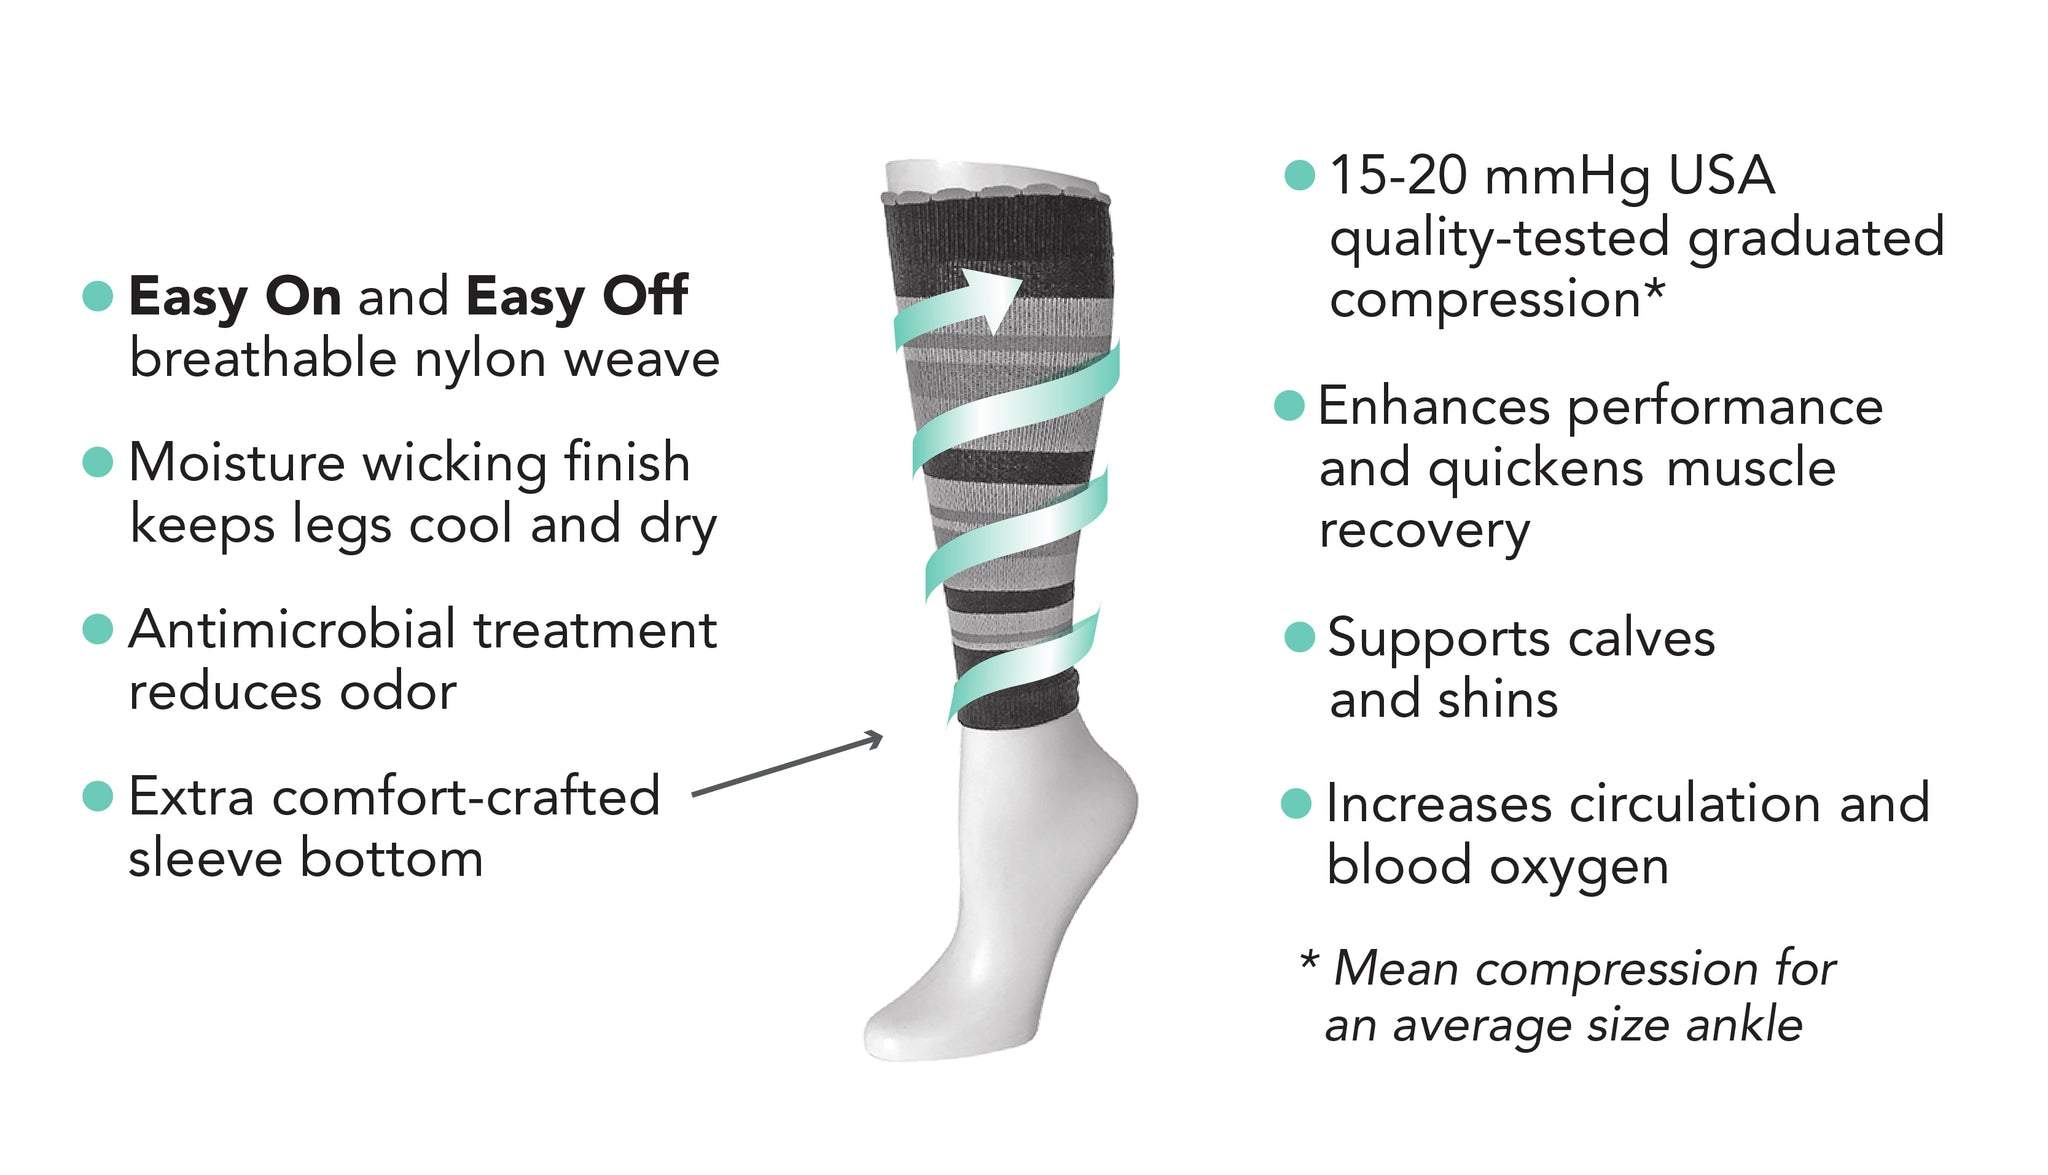 9ec29f019e The results of several scientific studies indicate that wearing compression  sleeves stimulates blood flow and ...